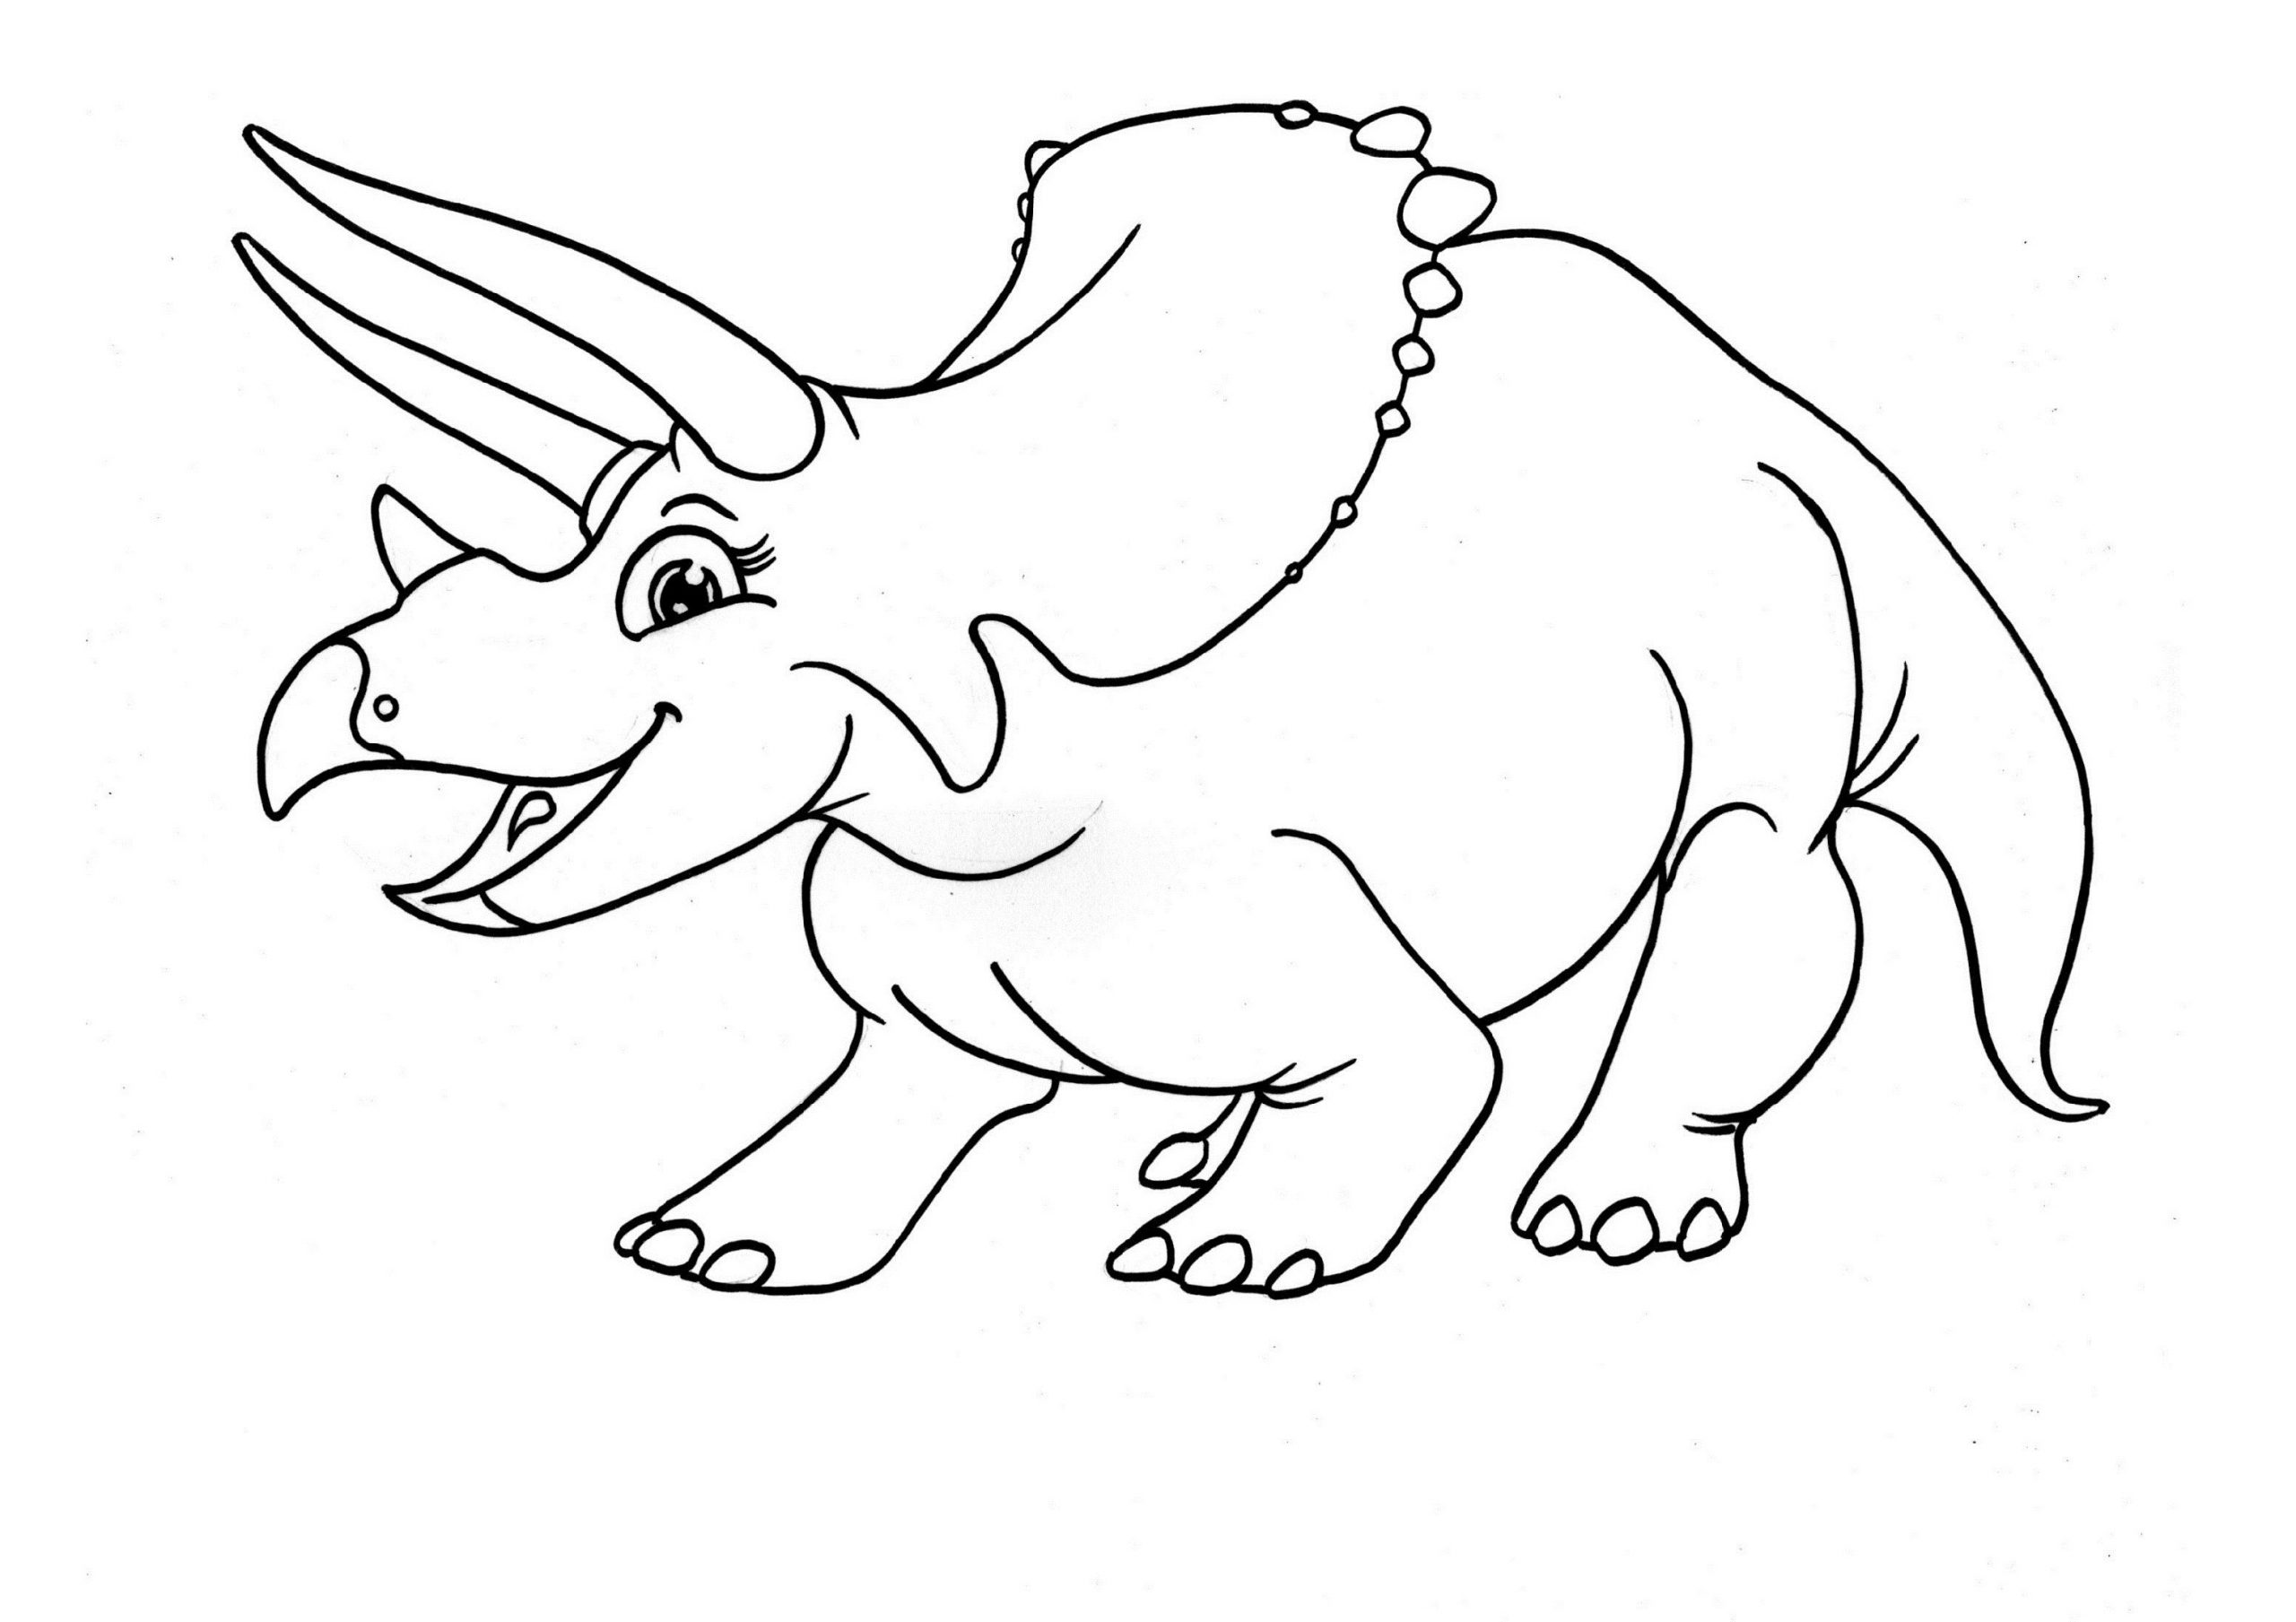 girl dinosaur coloring pages dinosaur pictures black and white google search pages coloring dinosaur girl